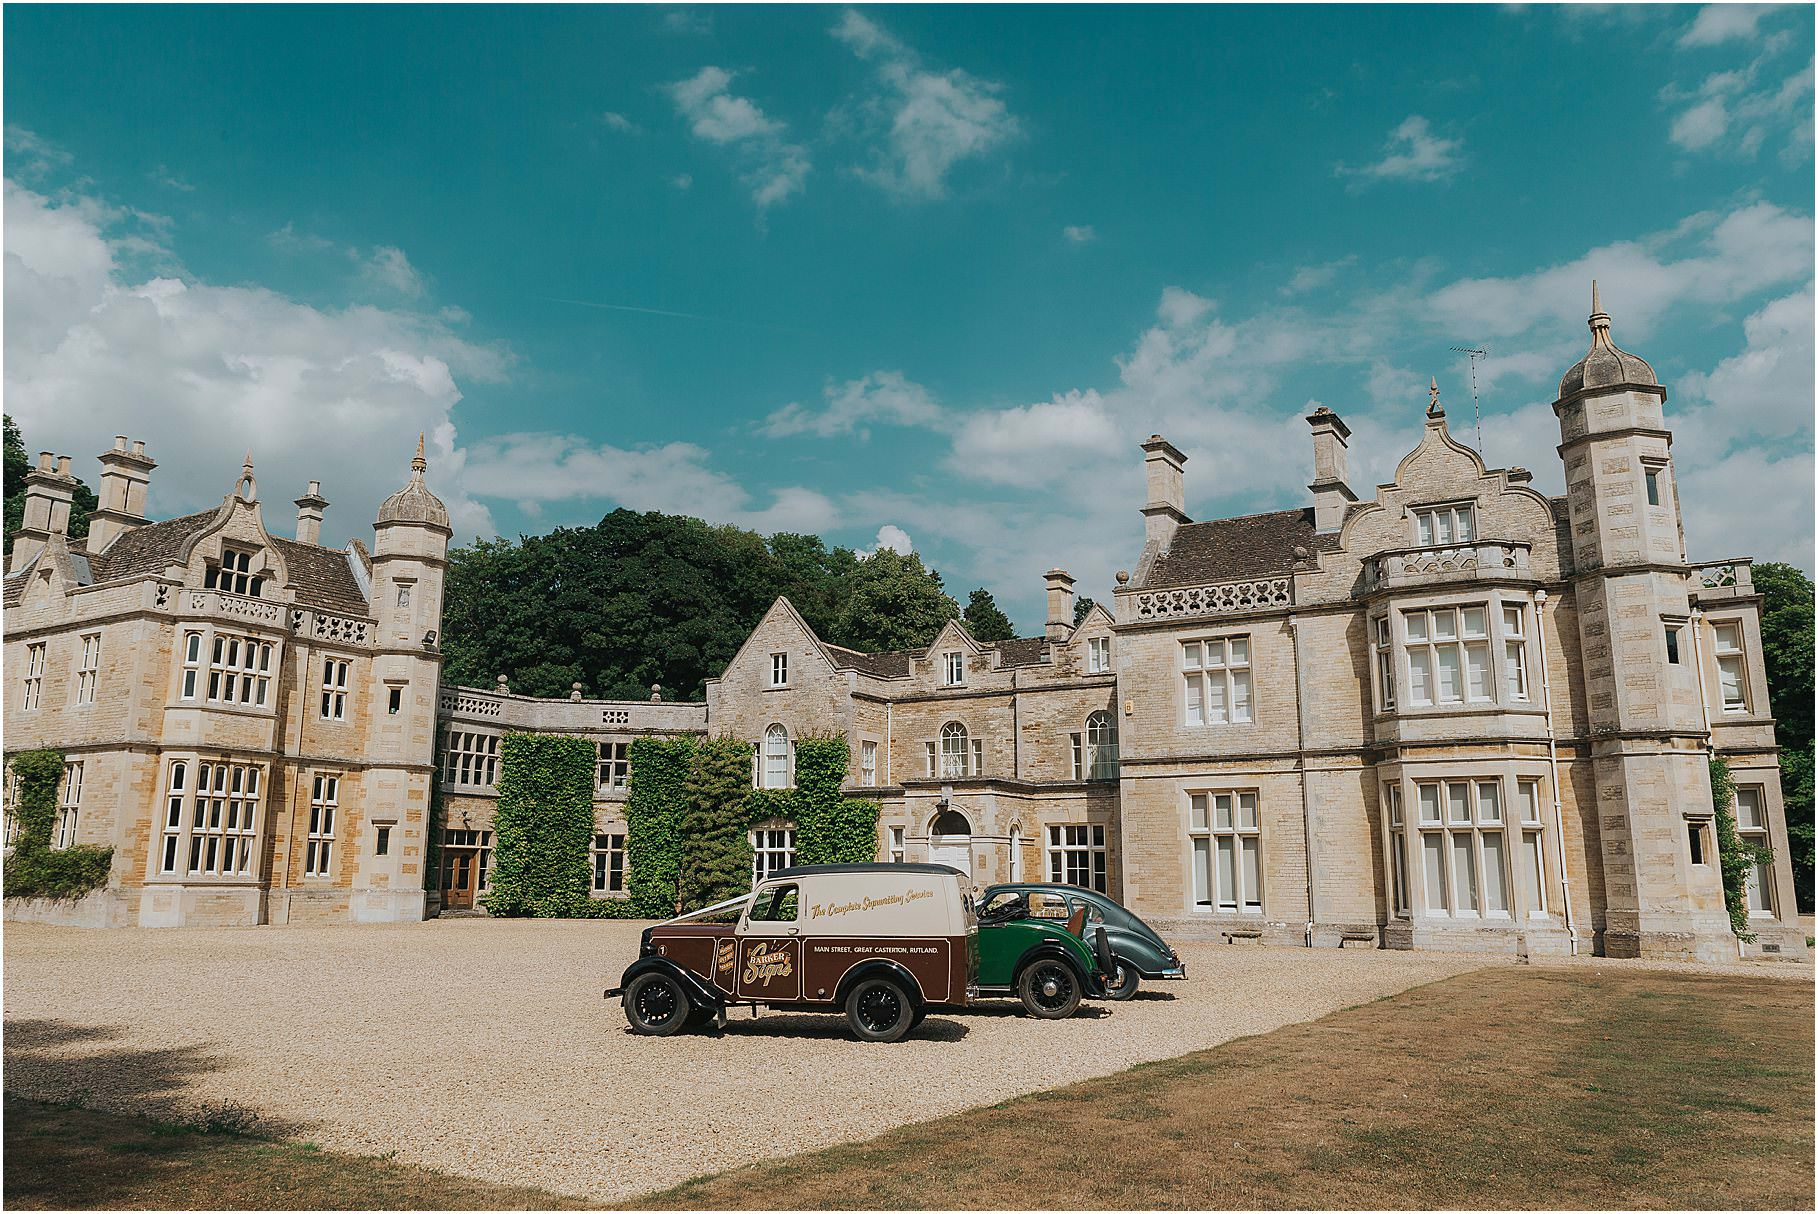 Rutland Weddings Exton Hall Exton Oakham Rutland Water Photographer 1069 - Mr and Mrs Barker // RUTLAND WEDDING